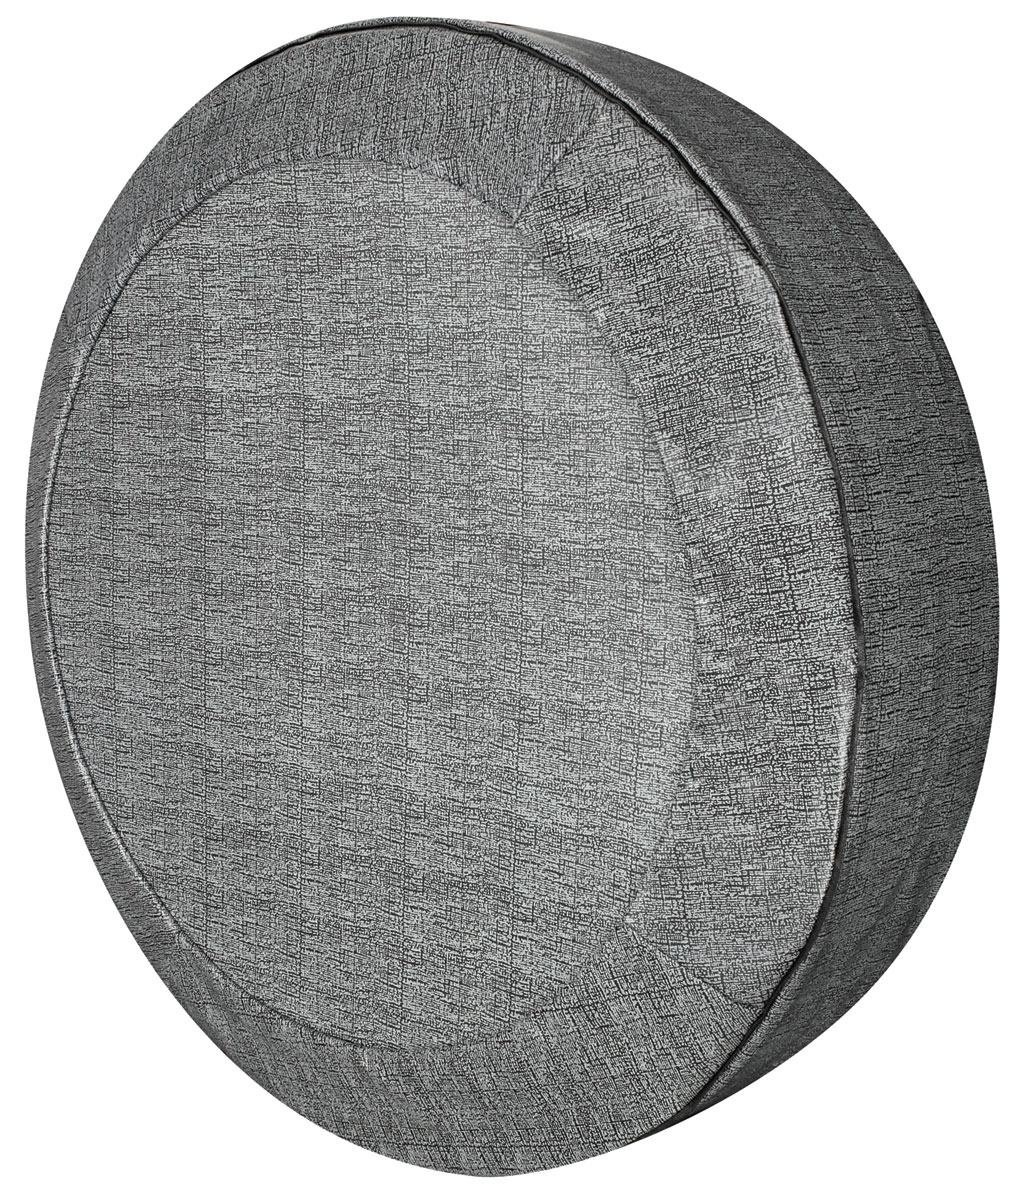 Photo of Trunk Spare Tire Cover crosshatch 15""